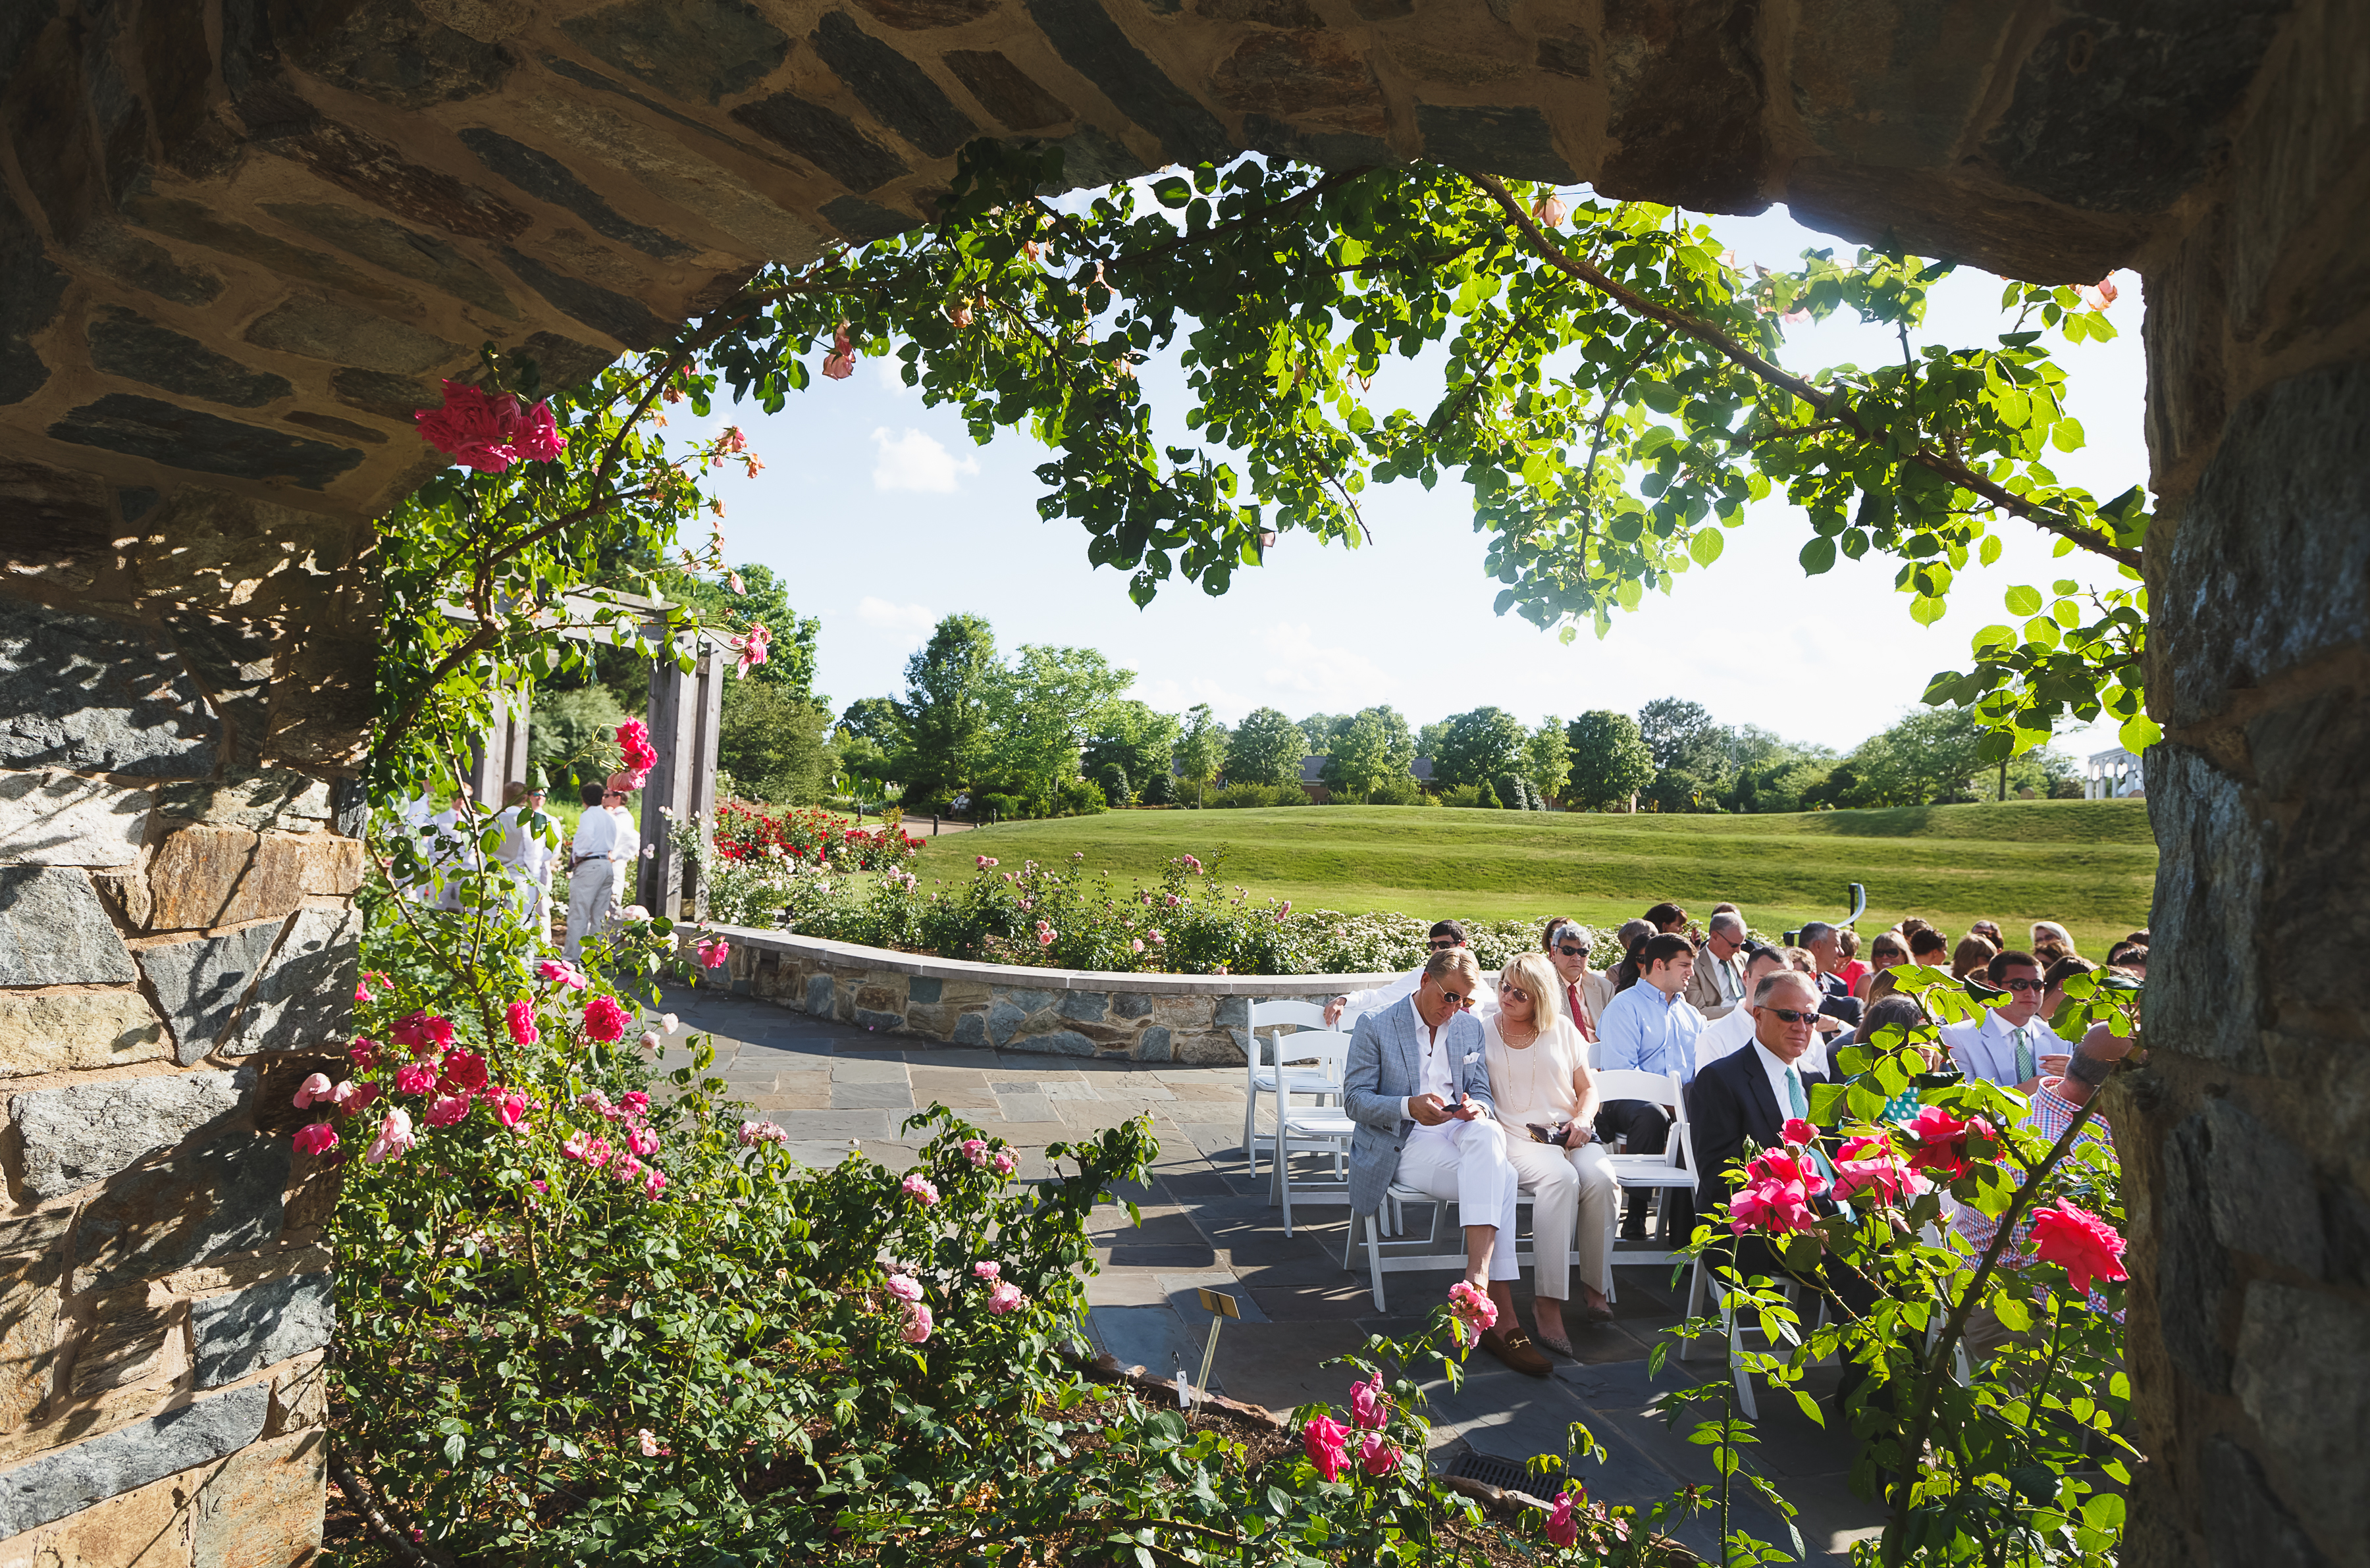 Outdoor Weddings At Lewis Ginter Botanical Garden Rose Image By Don Mears Photography